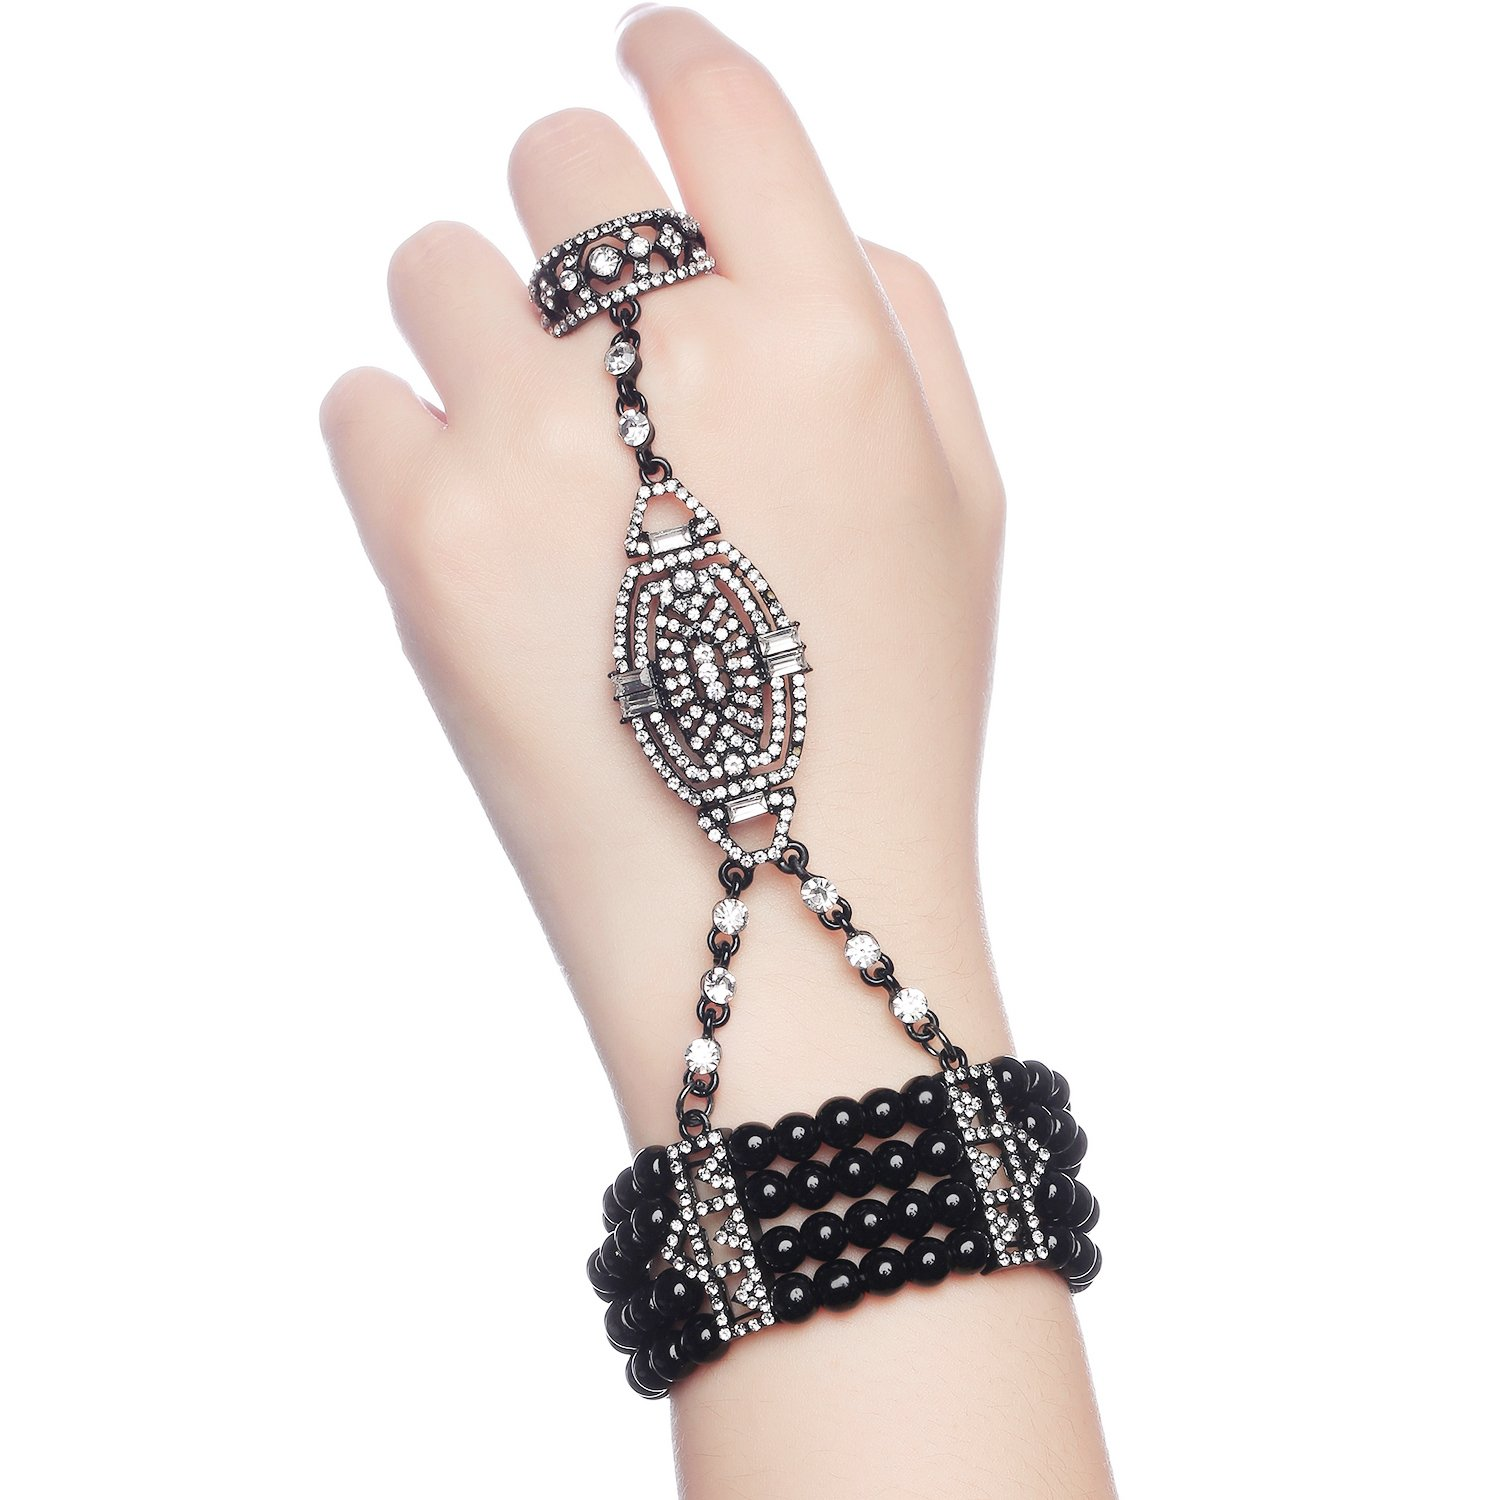 BABEYOND 1920s Flapper Bracelet Ring Set Austrian Crystals Imitation Pearl (black) by BABEYOND